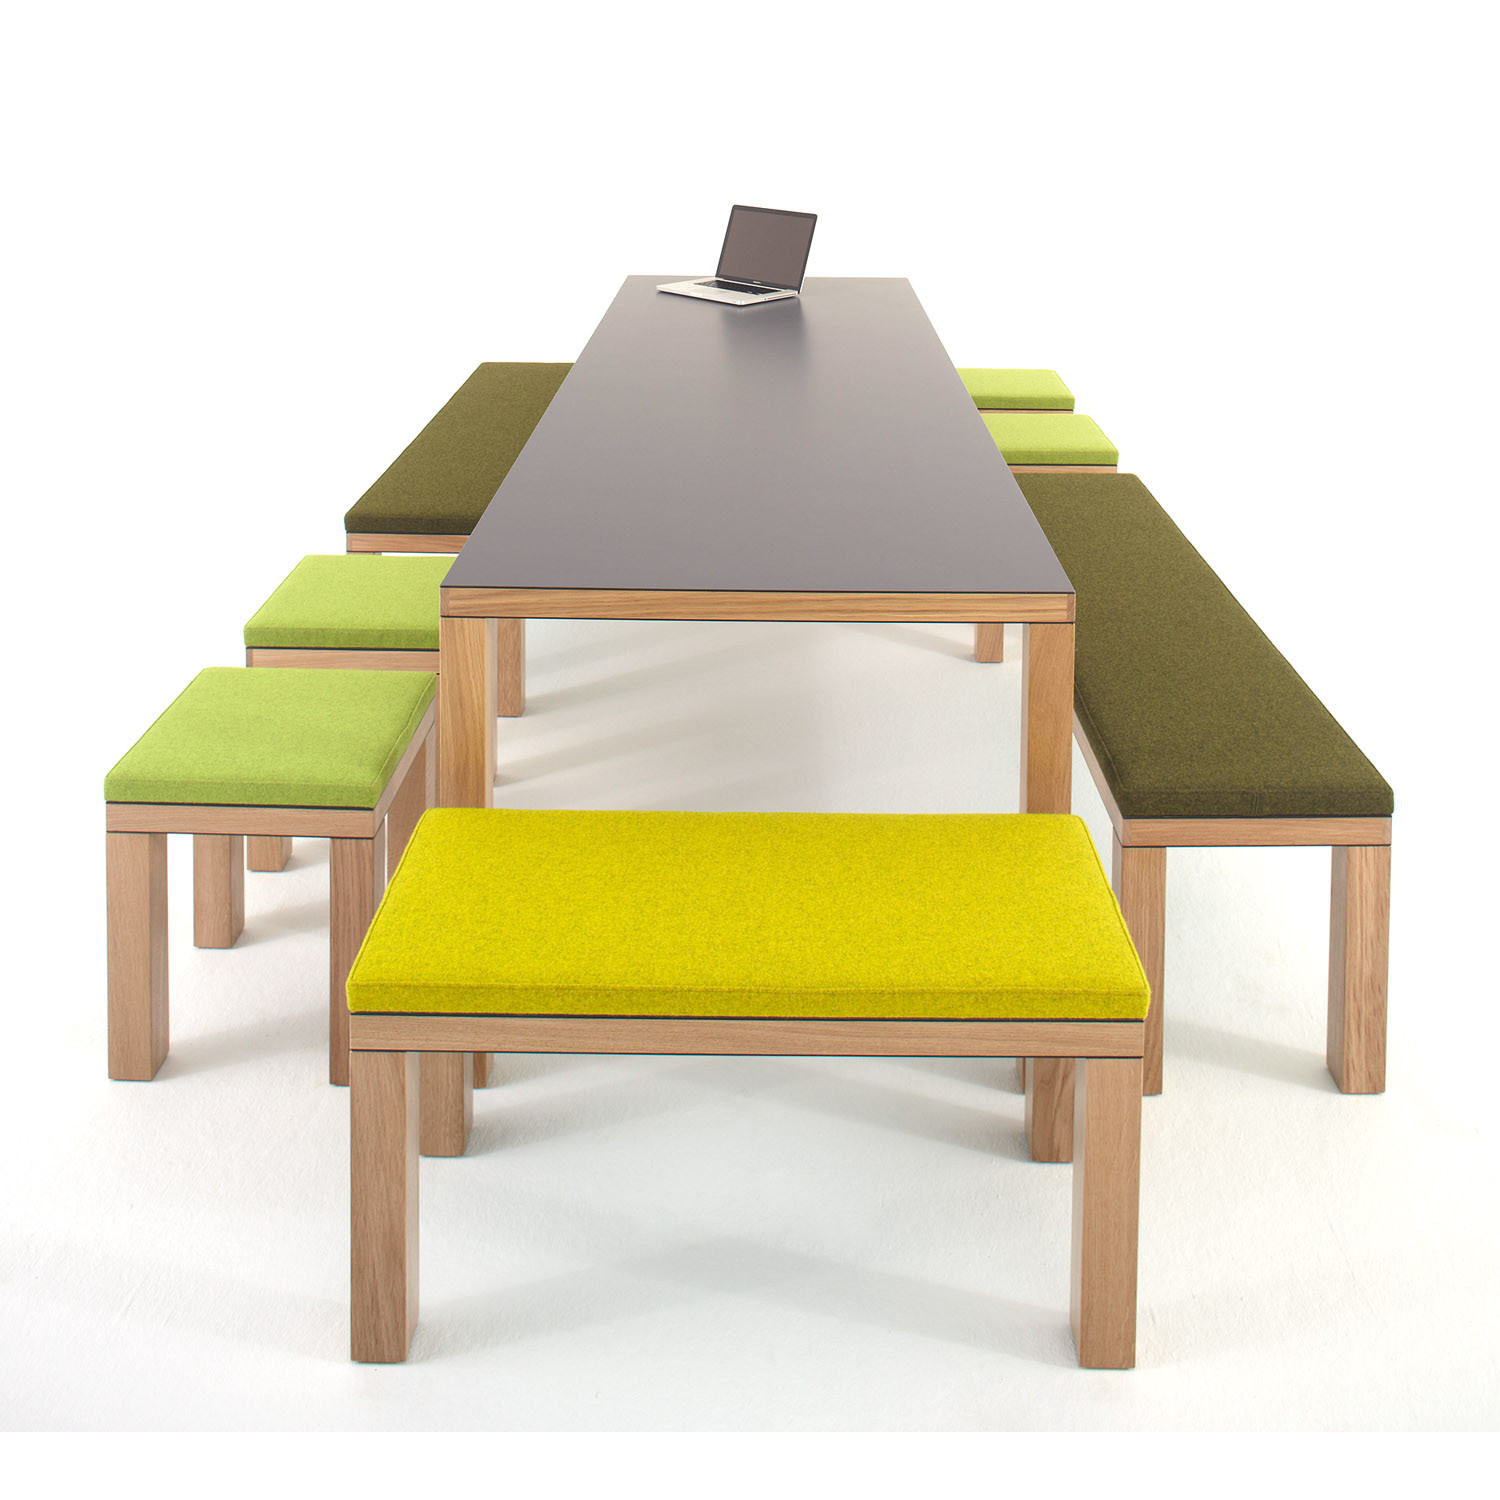 Bosa Table, Benches and Stools